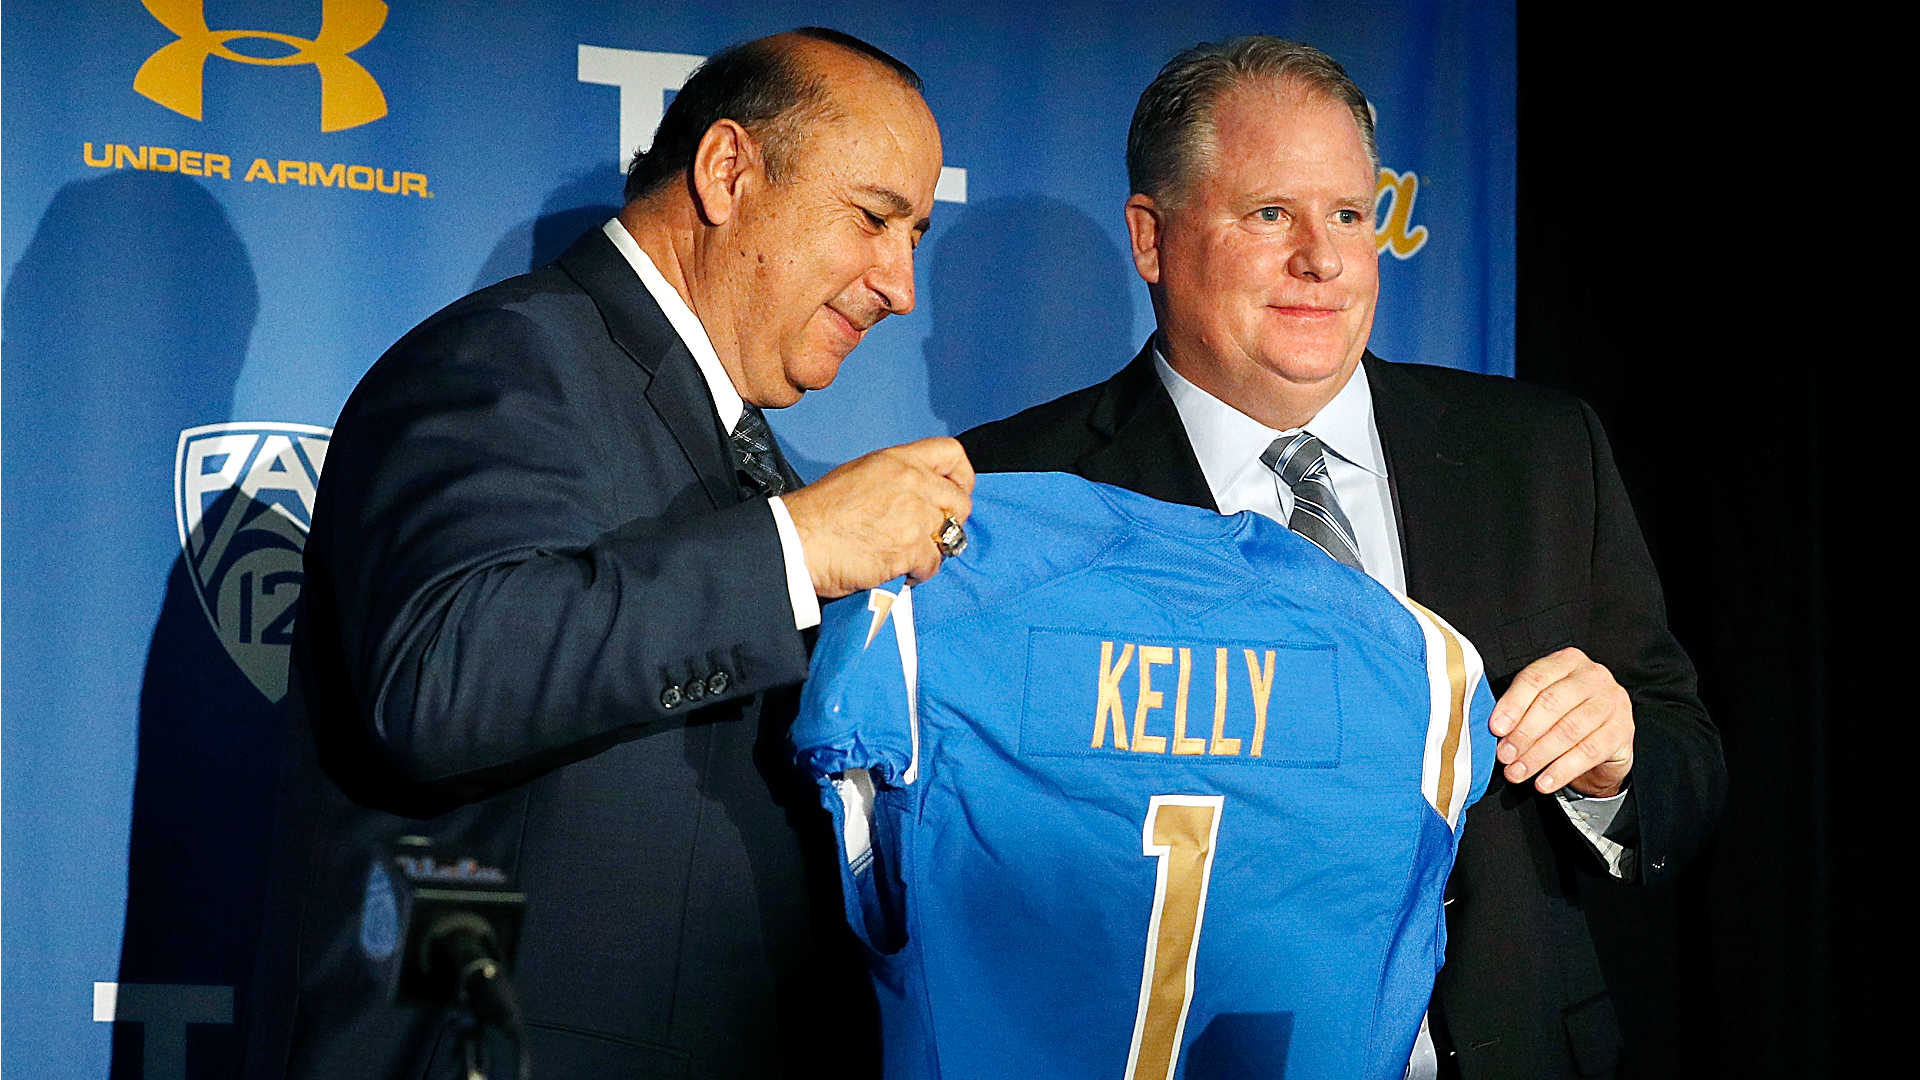 Chip-kelly-0818181-getty-ftrjpg_17qw4rkcic8qy1v2kkxcbde401